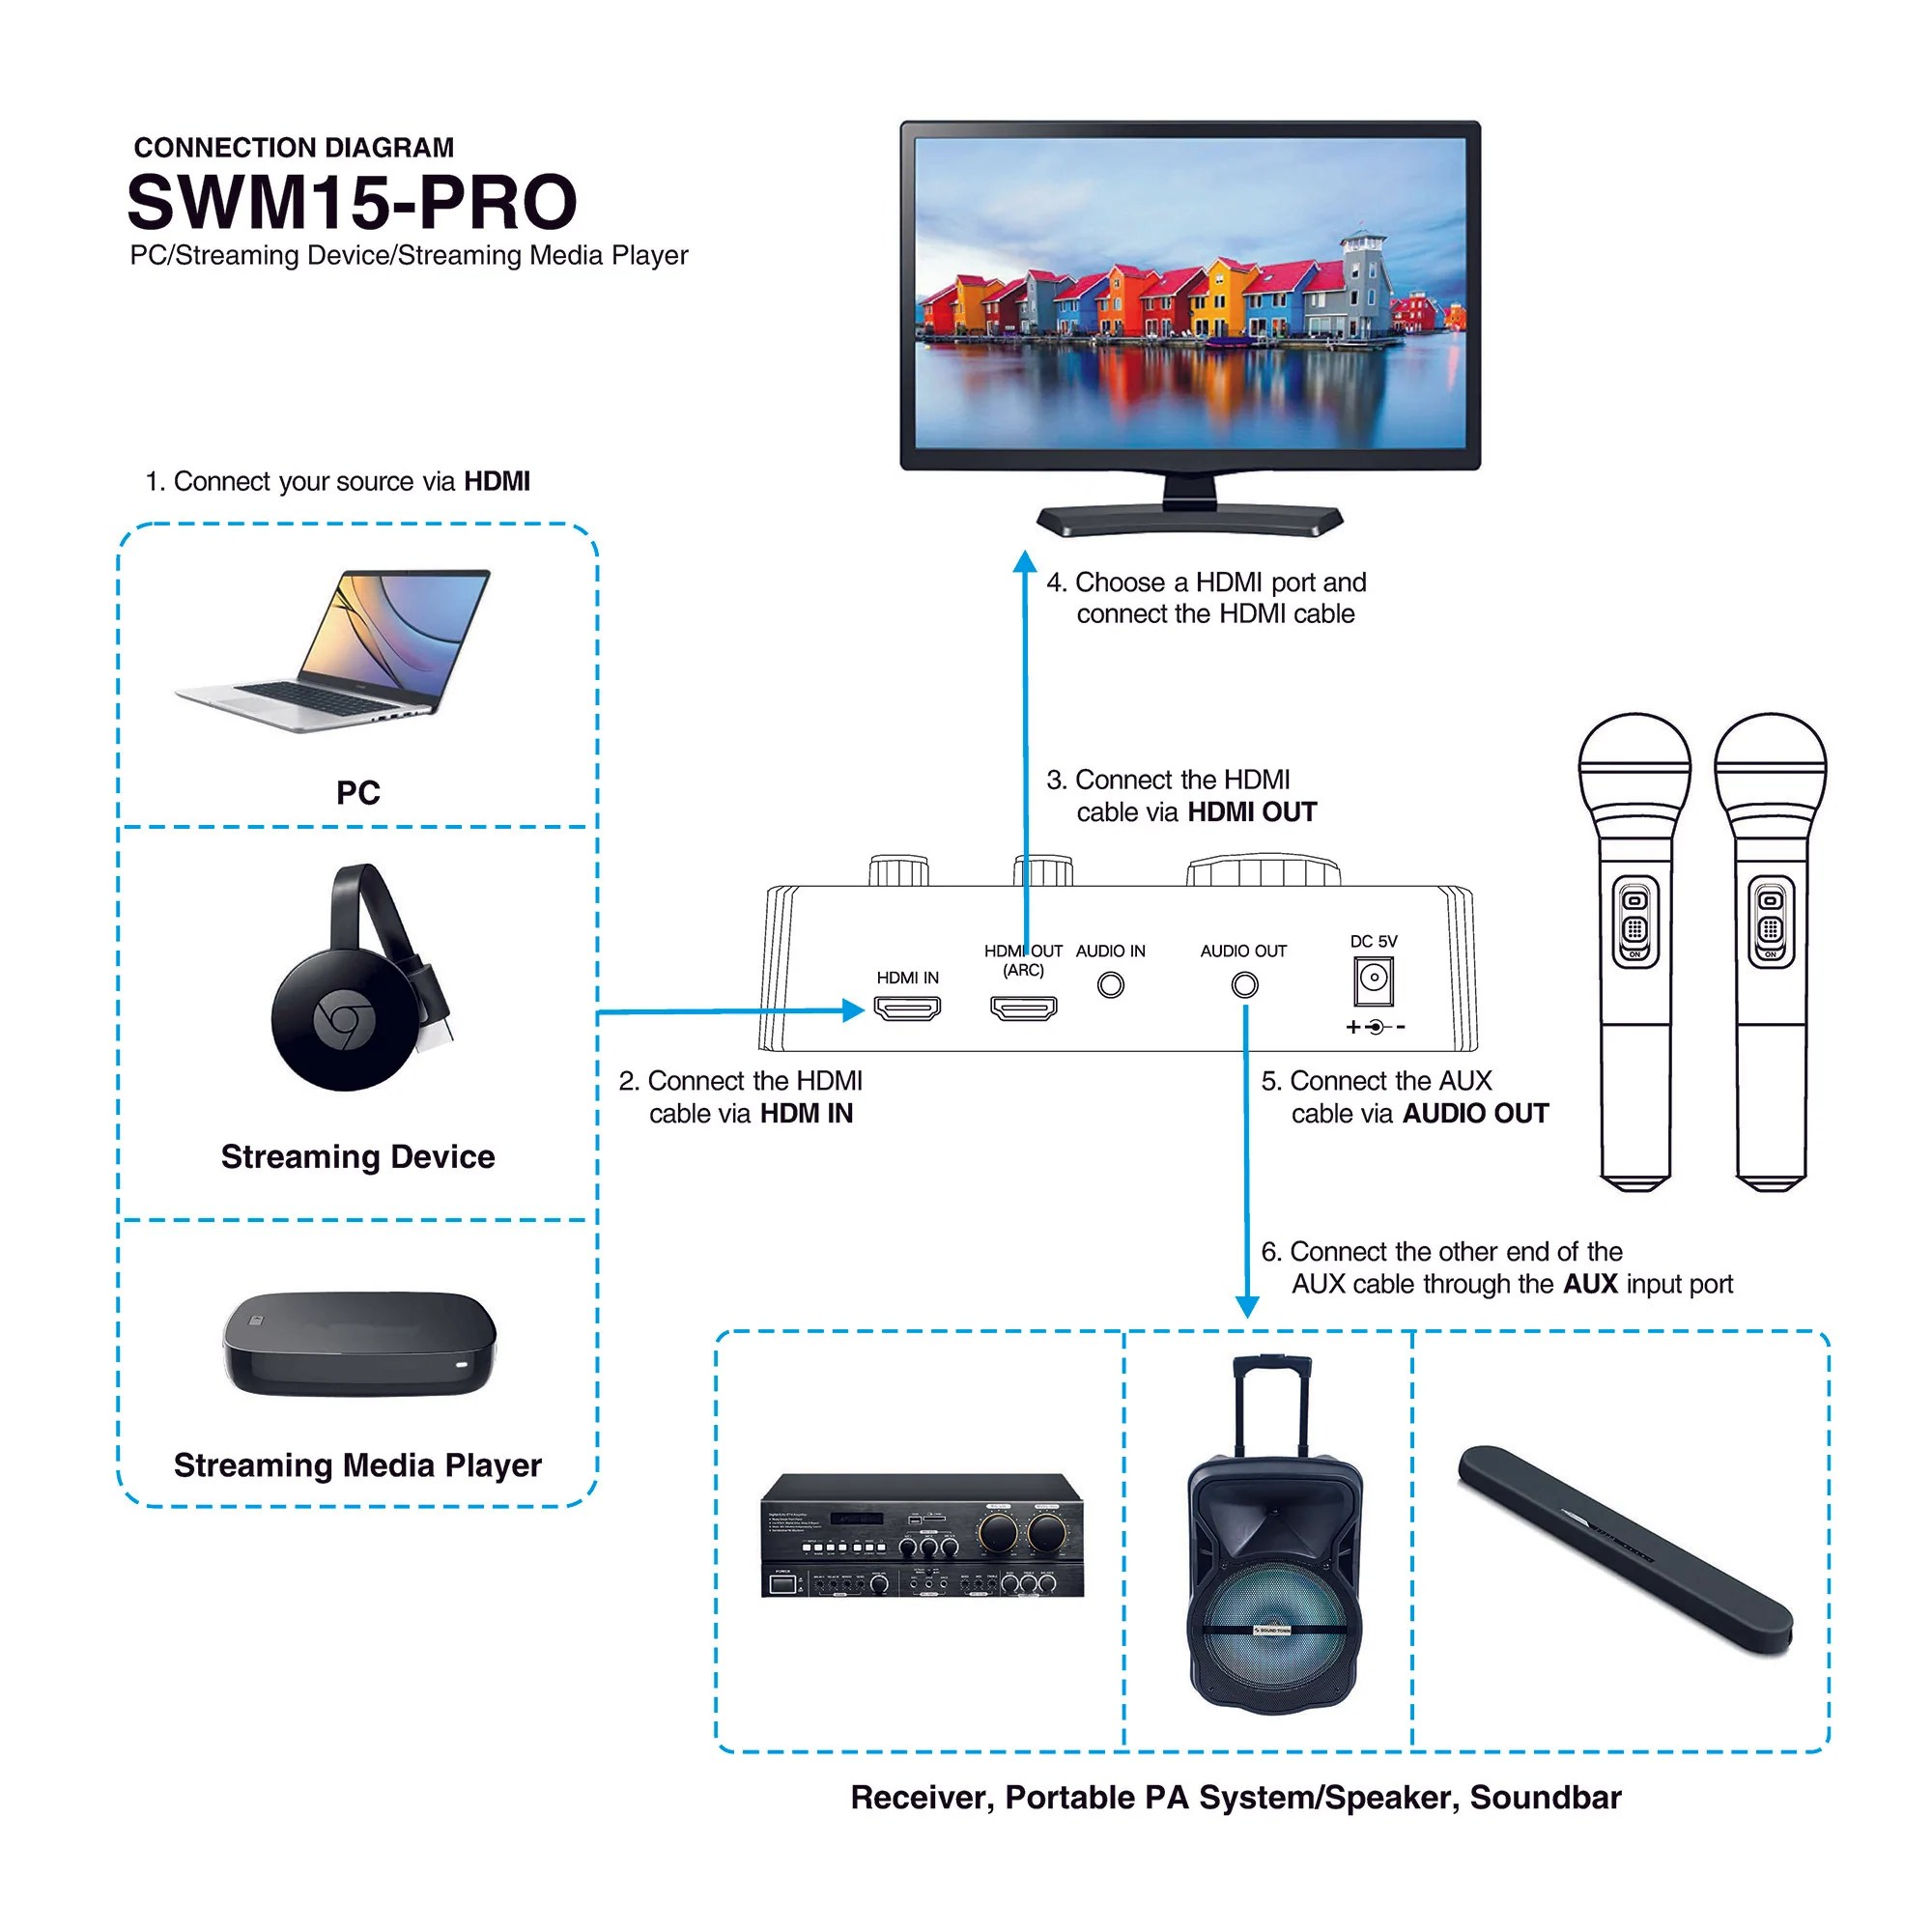 medium resolution of swm15 pro pc streaming device laptop google chromecast media player connection diagram how to connect